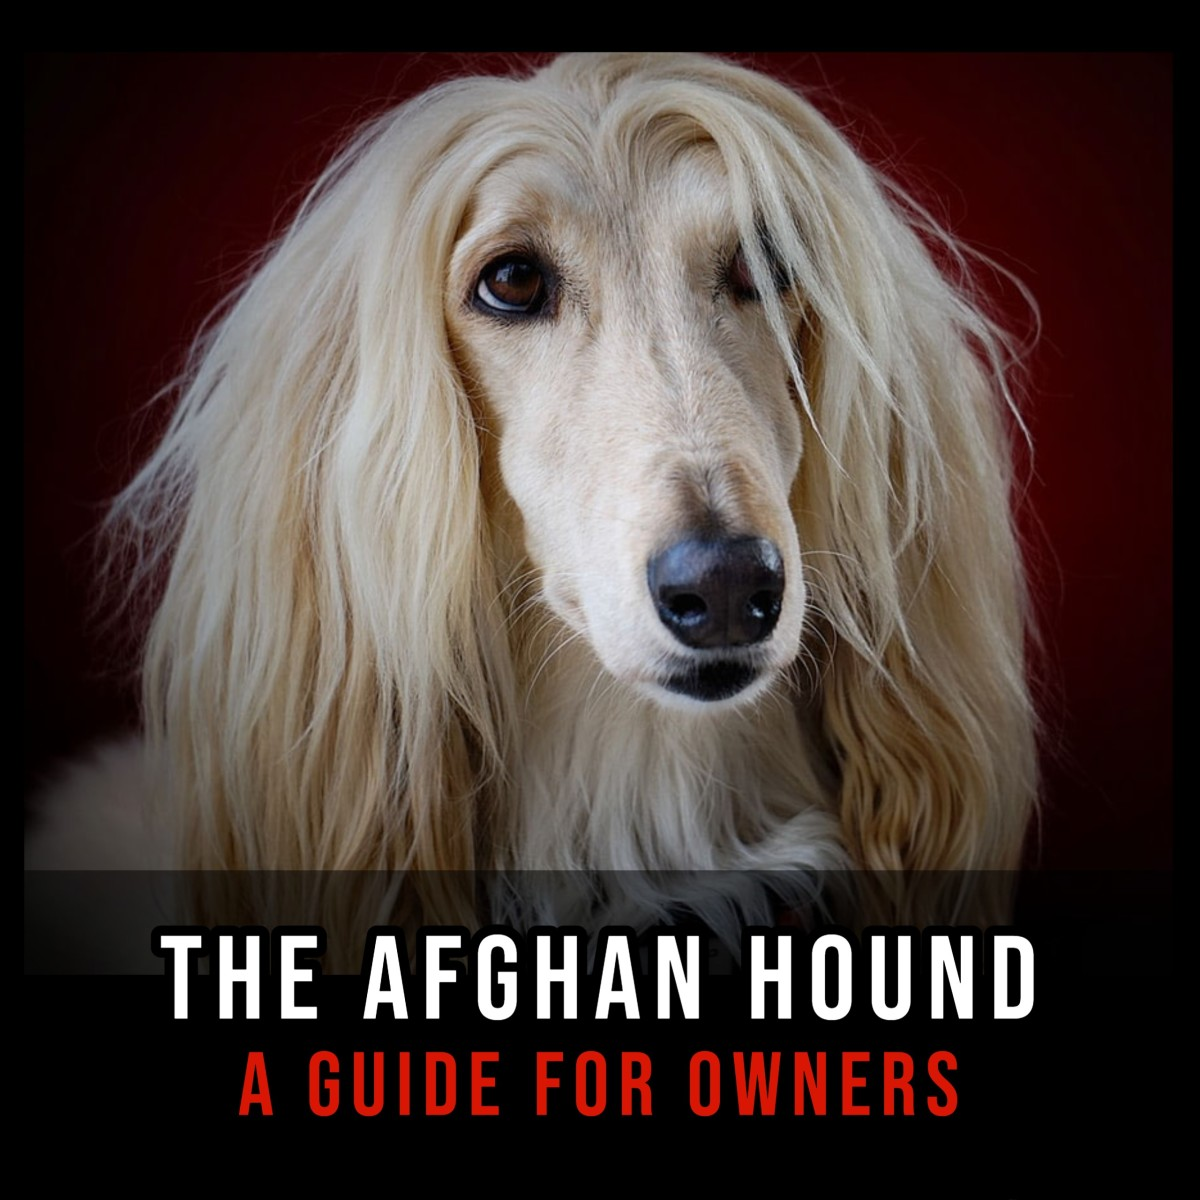 The Afghan Hound: A Guide for Owners